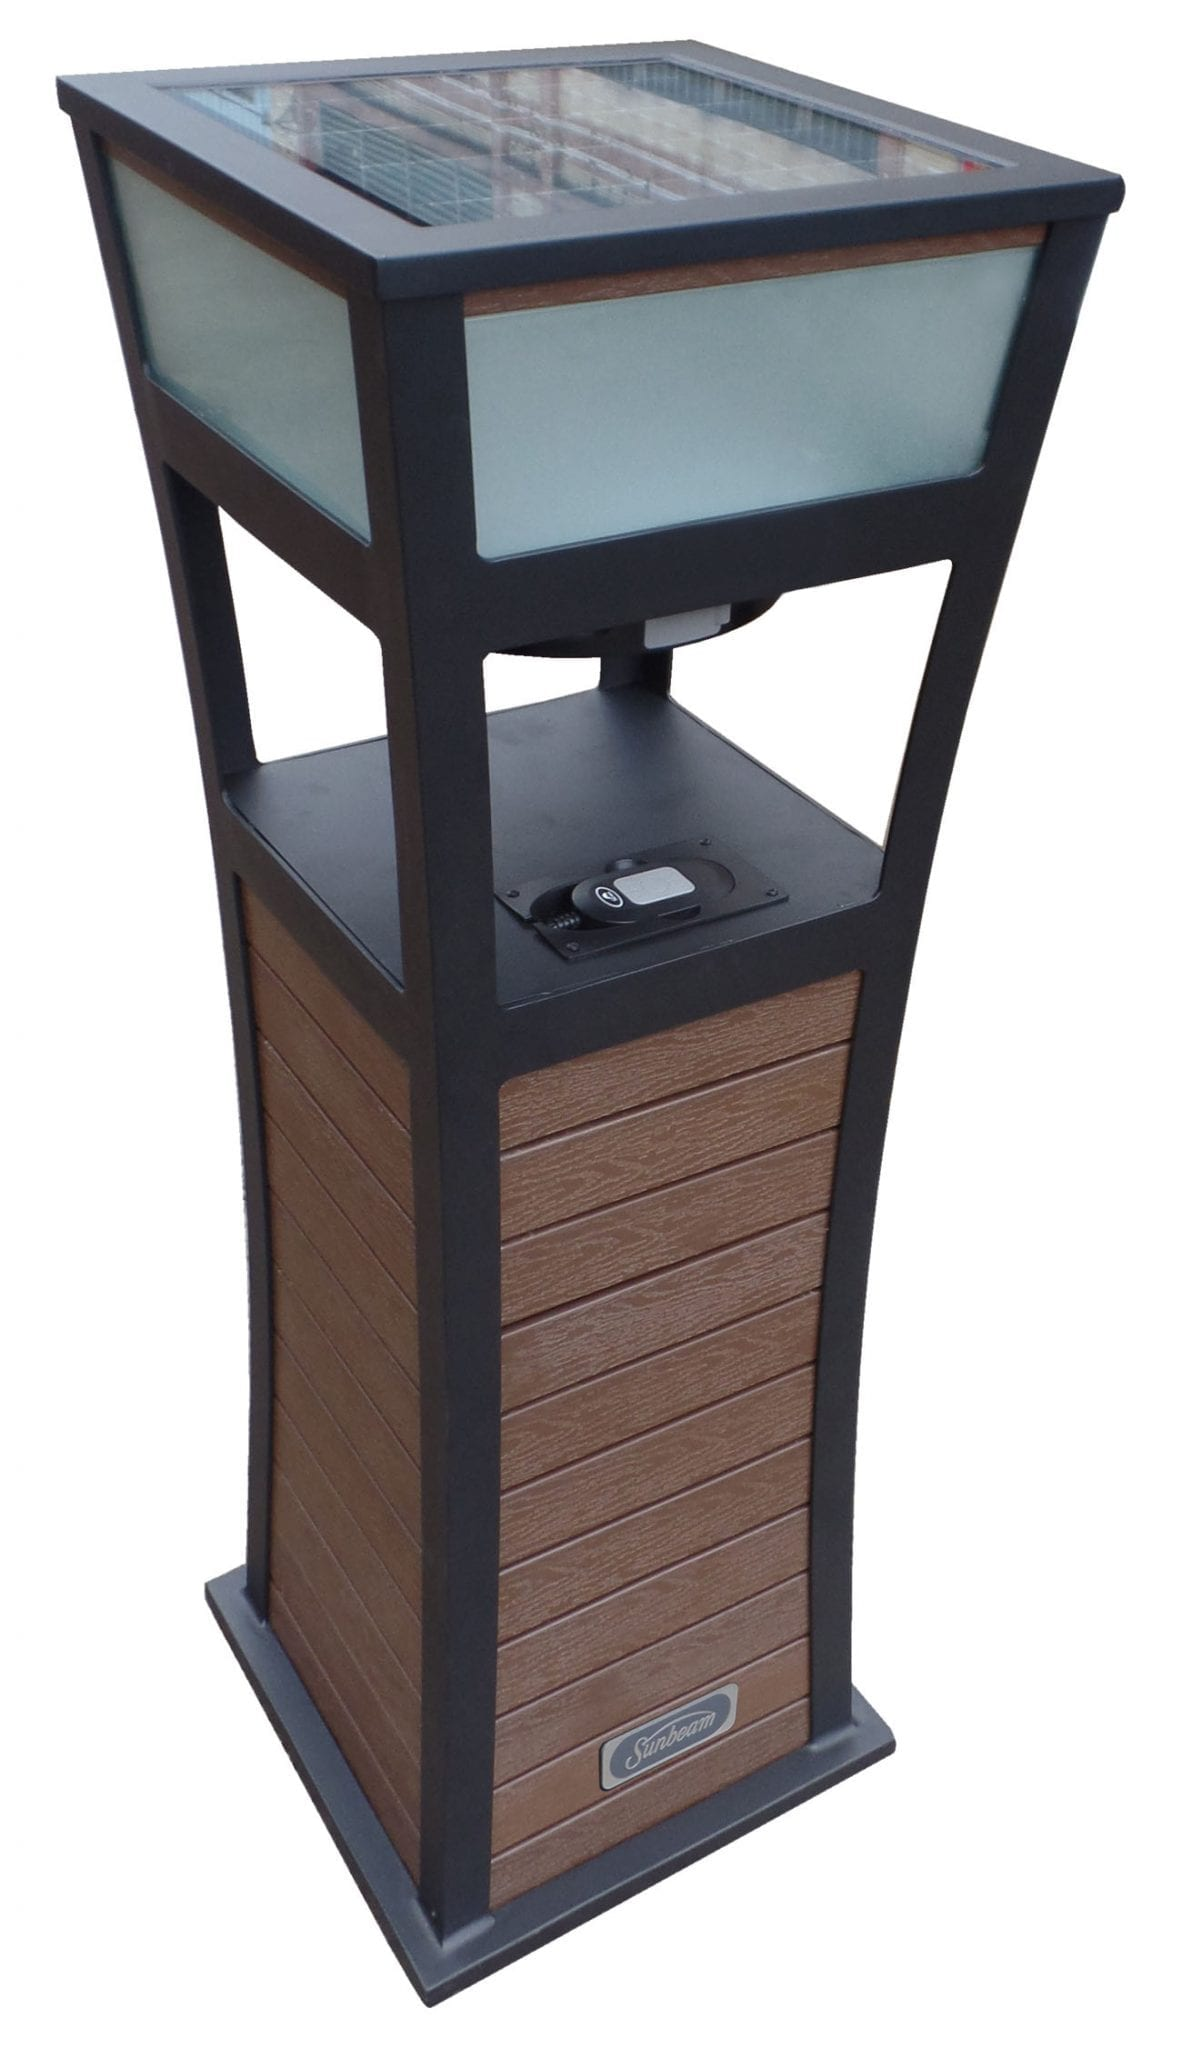 solar audio accent tables jay trends sunbeam table metal nesting wicker outdoor furniture bunnings quilted runner ideas innovative coffee lamp shades for wall lights mid century